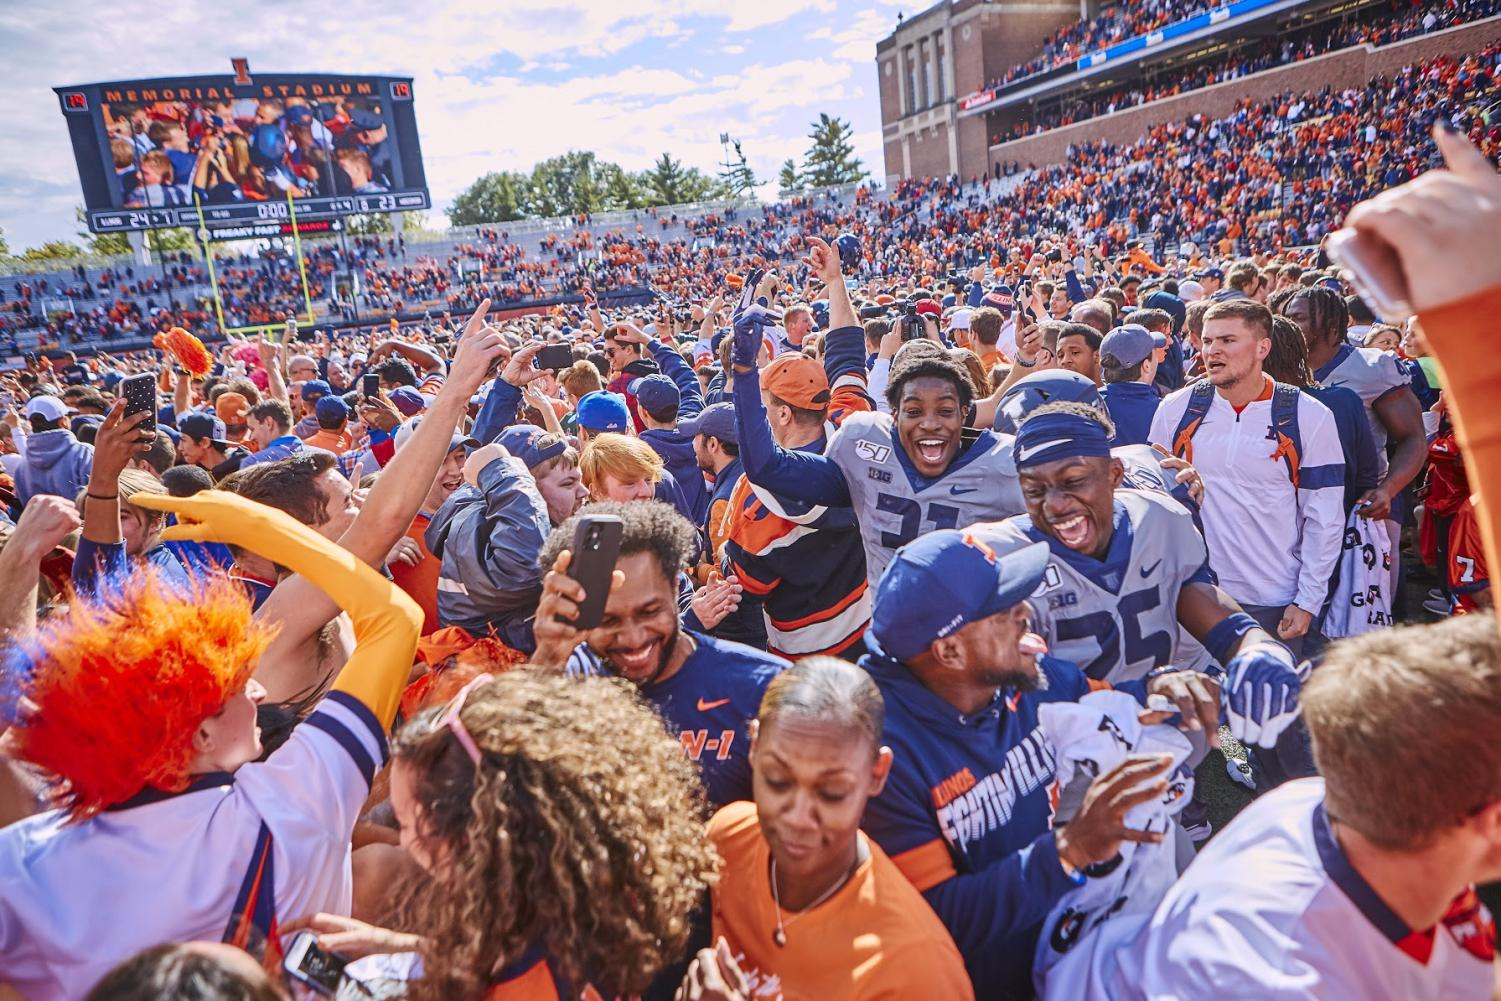 Illinois celebrates its win against Wisconsin on Saturday. Soon after the victory, spectators of the game rushed the field.